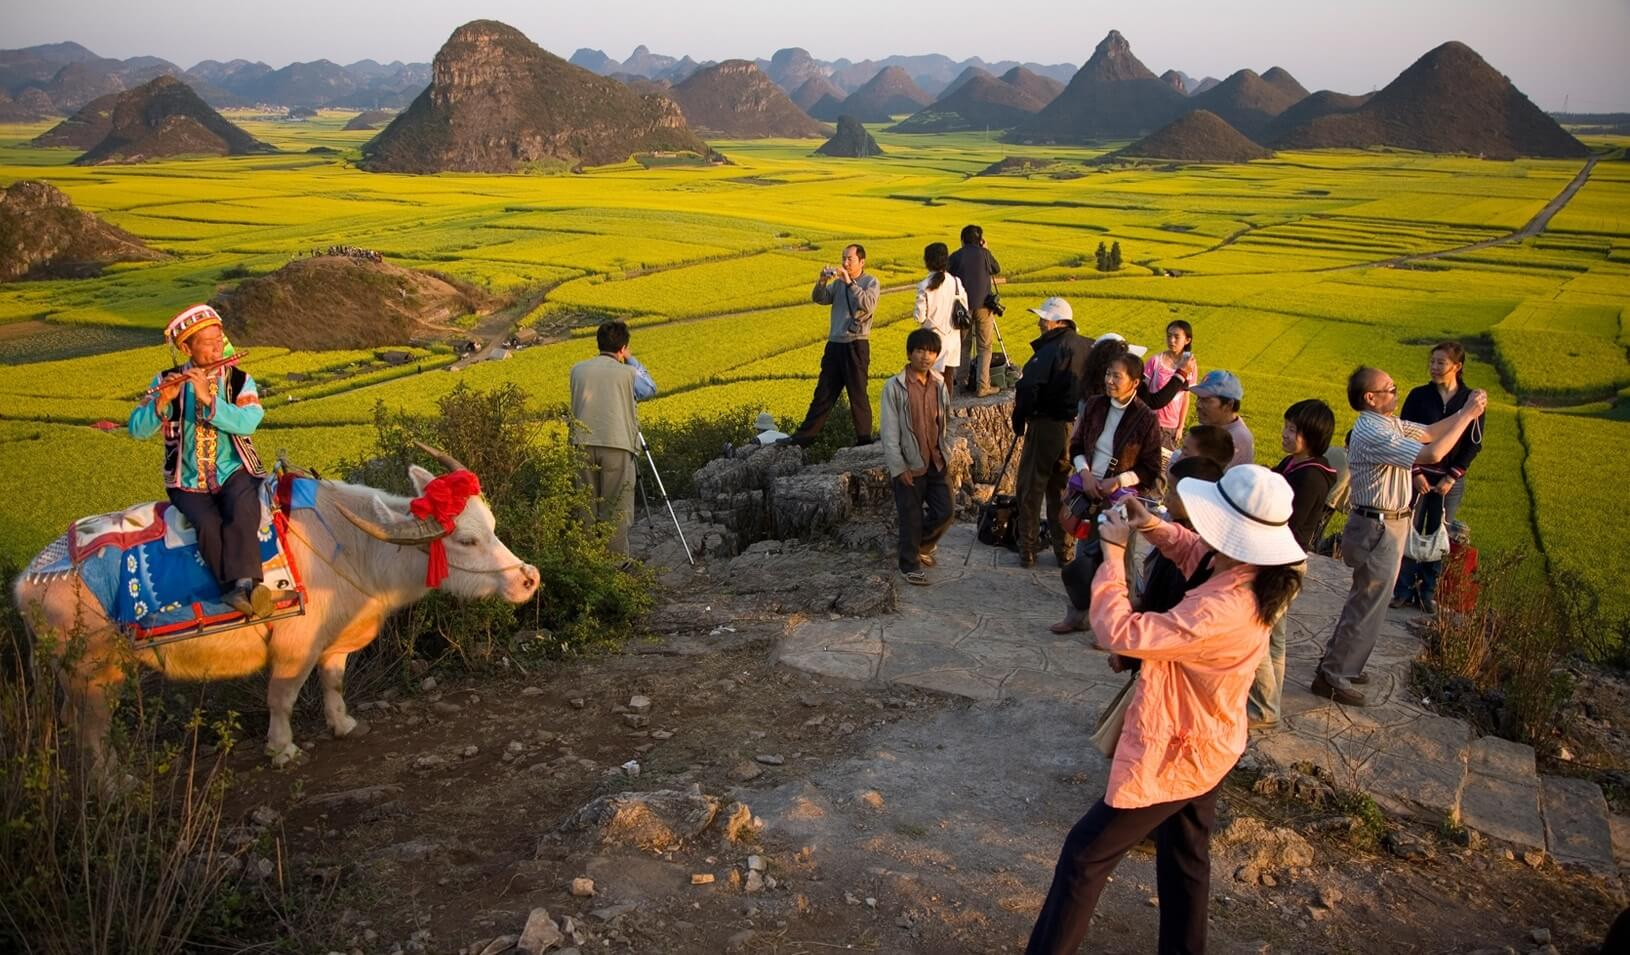 Six Chinese cities jointly release the Quality Rural Tourism Declaration